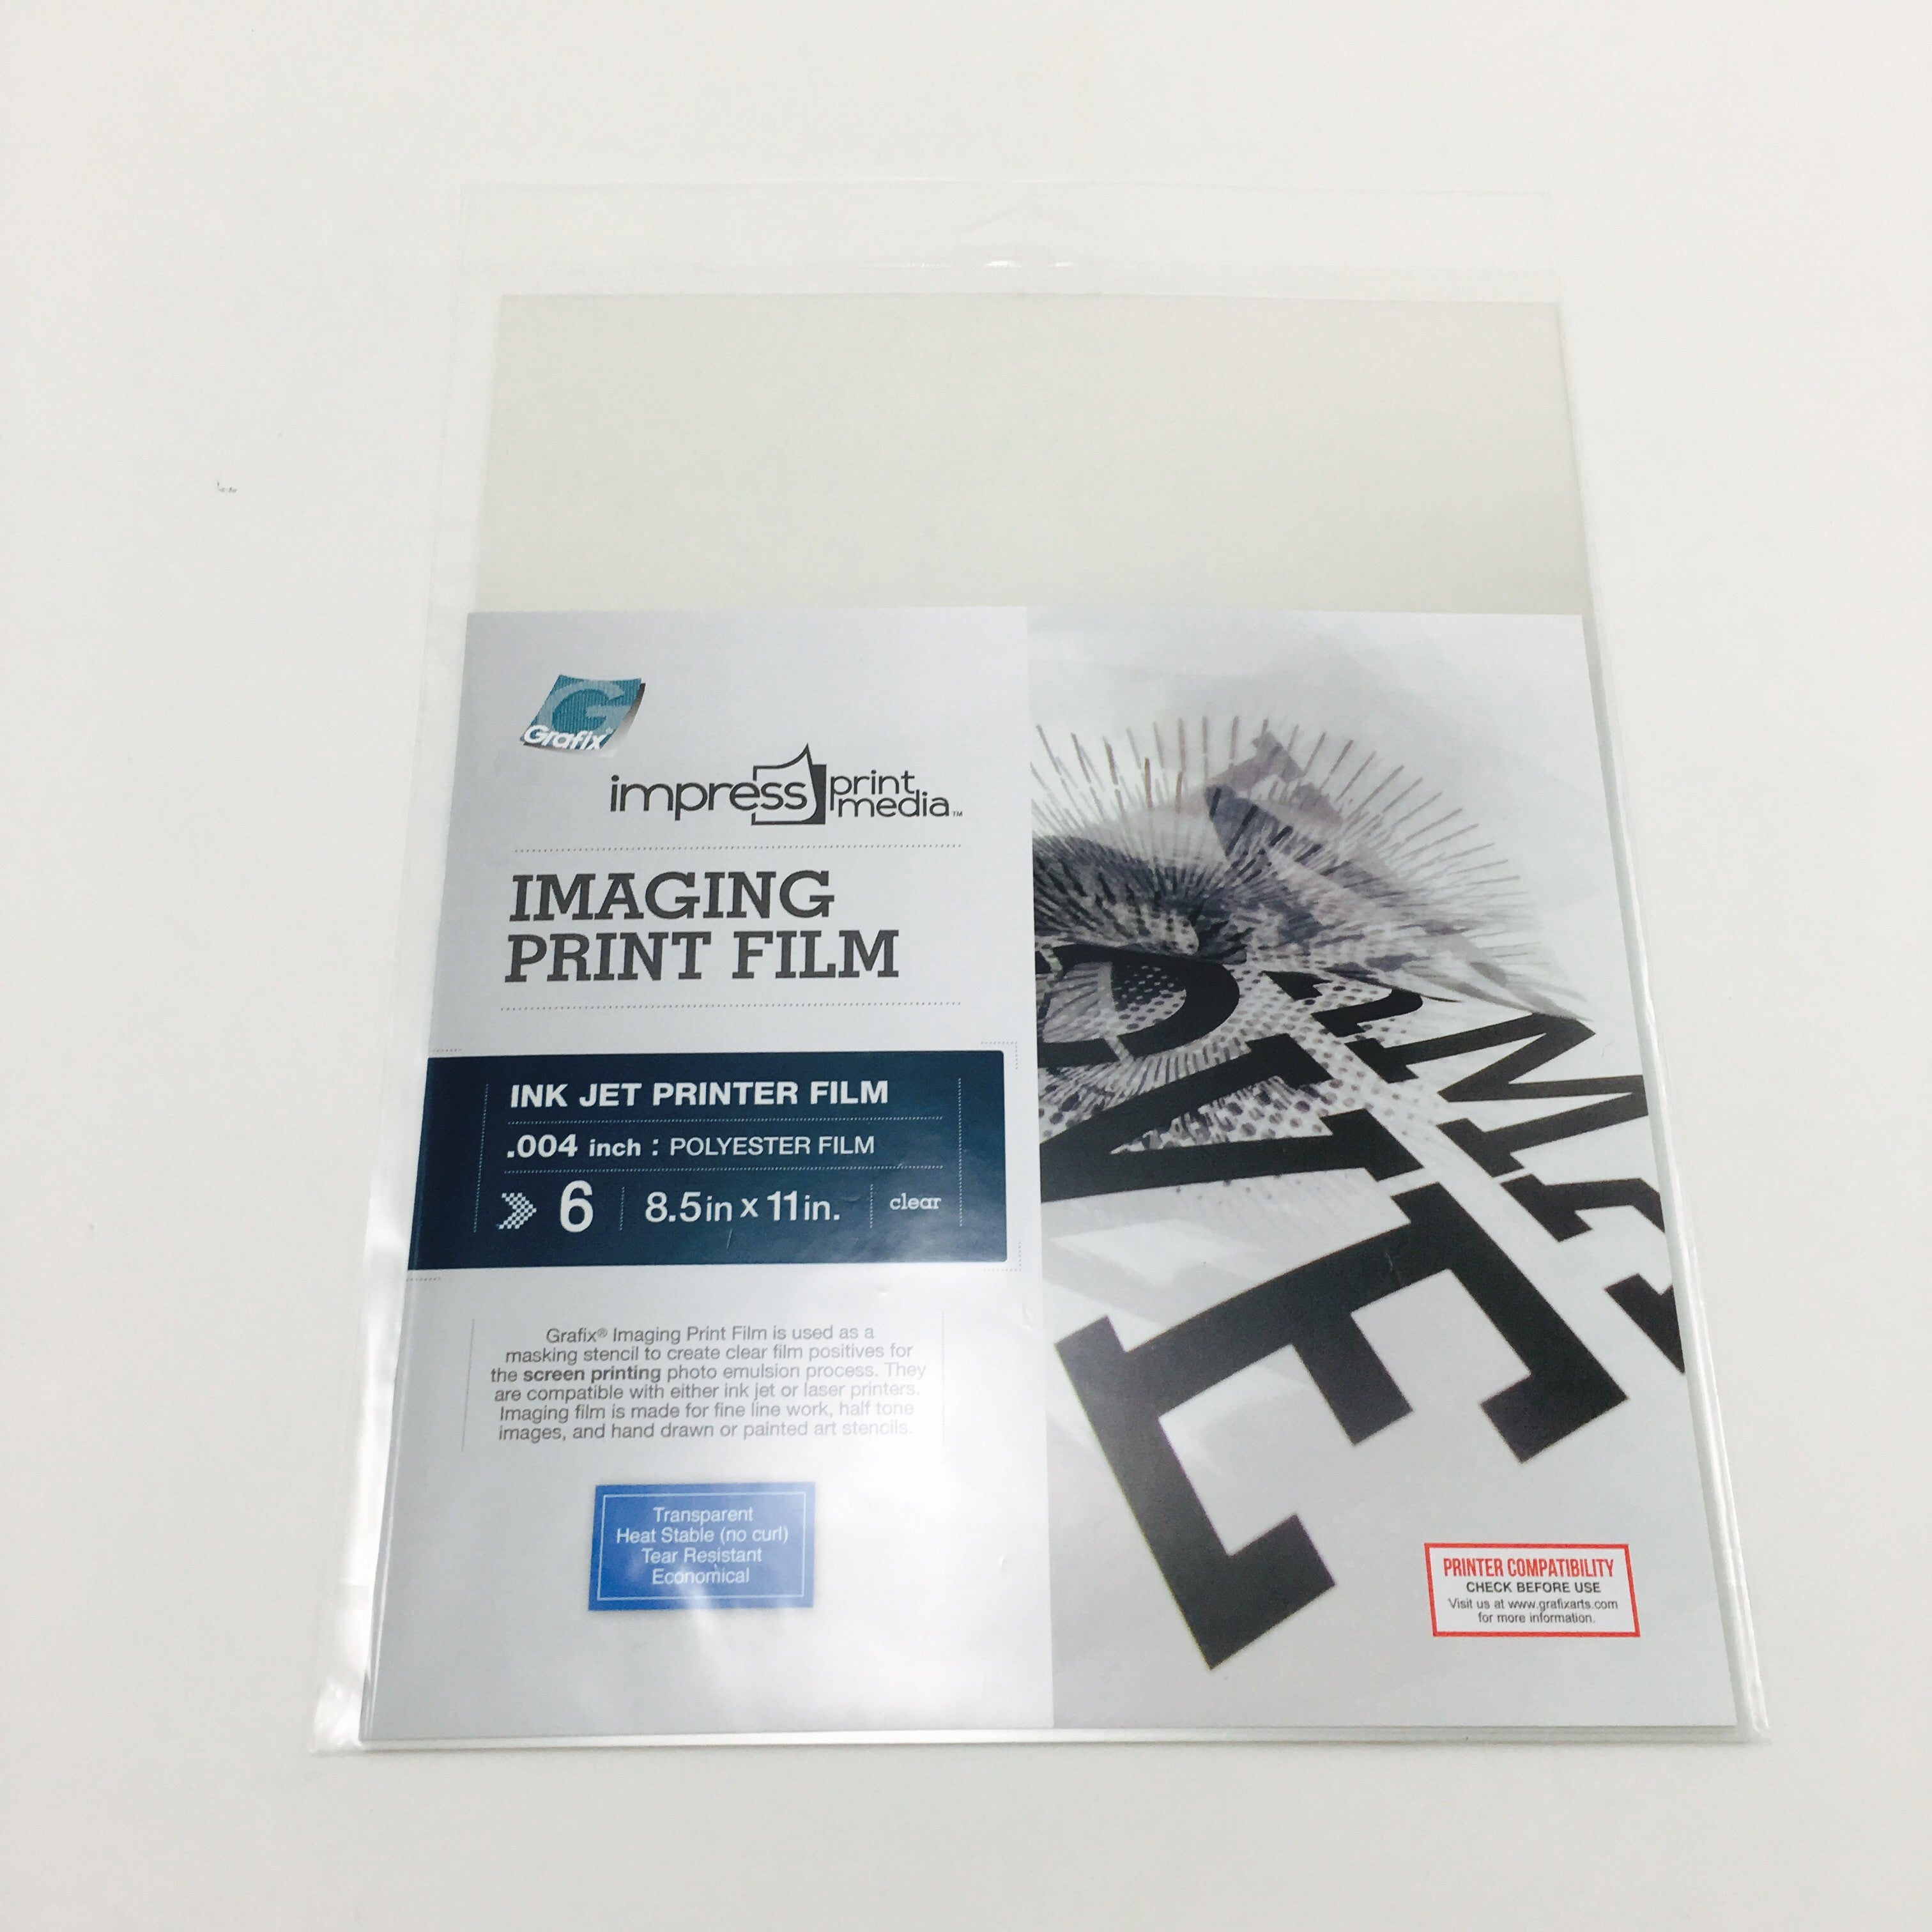 Imaging Print Film for Screen Print Inkjet Scans (6 sheets - 8.5 x 11 inches) - by Grafix - K. A. Artist Shop